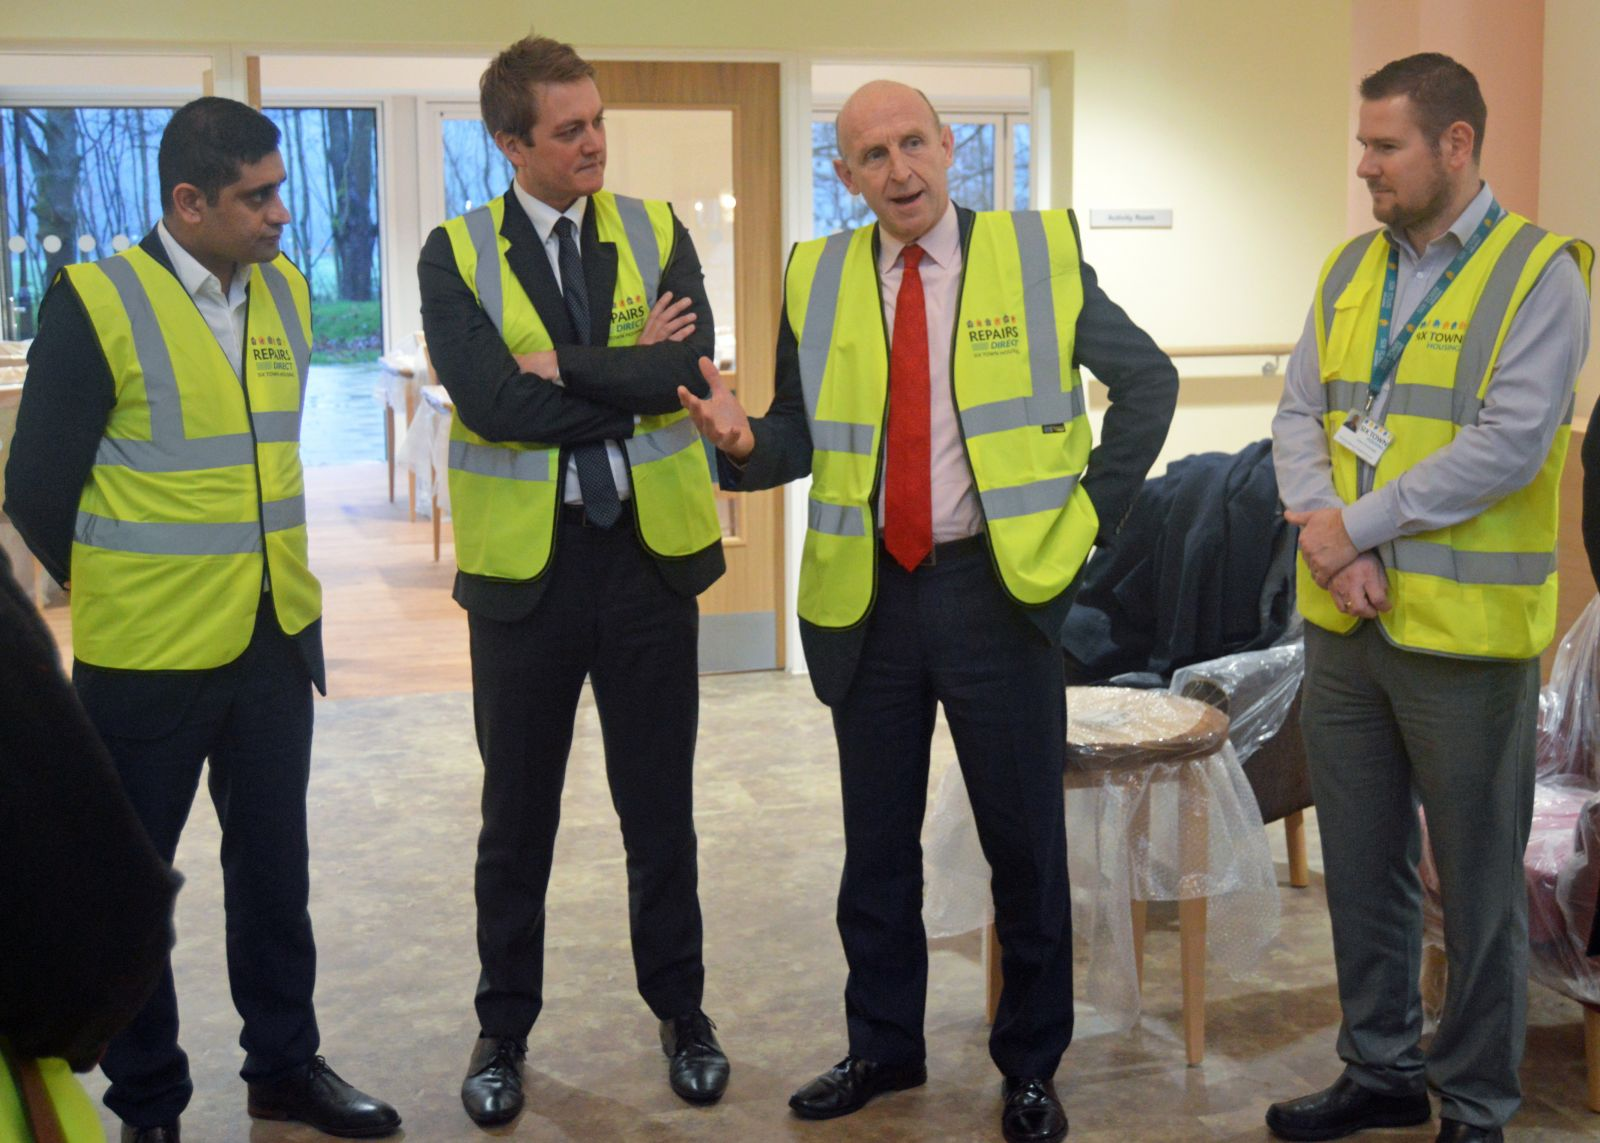 Council leader Rishi Shori, James Frith MP, Shadow Housing Minister John Healey and Adam Greenhalgh (Six Town Housing Business Manager)